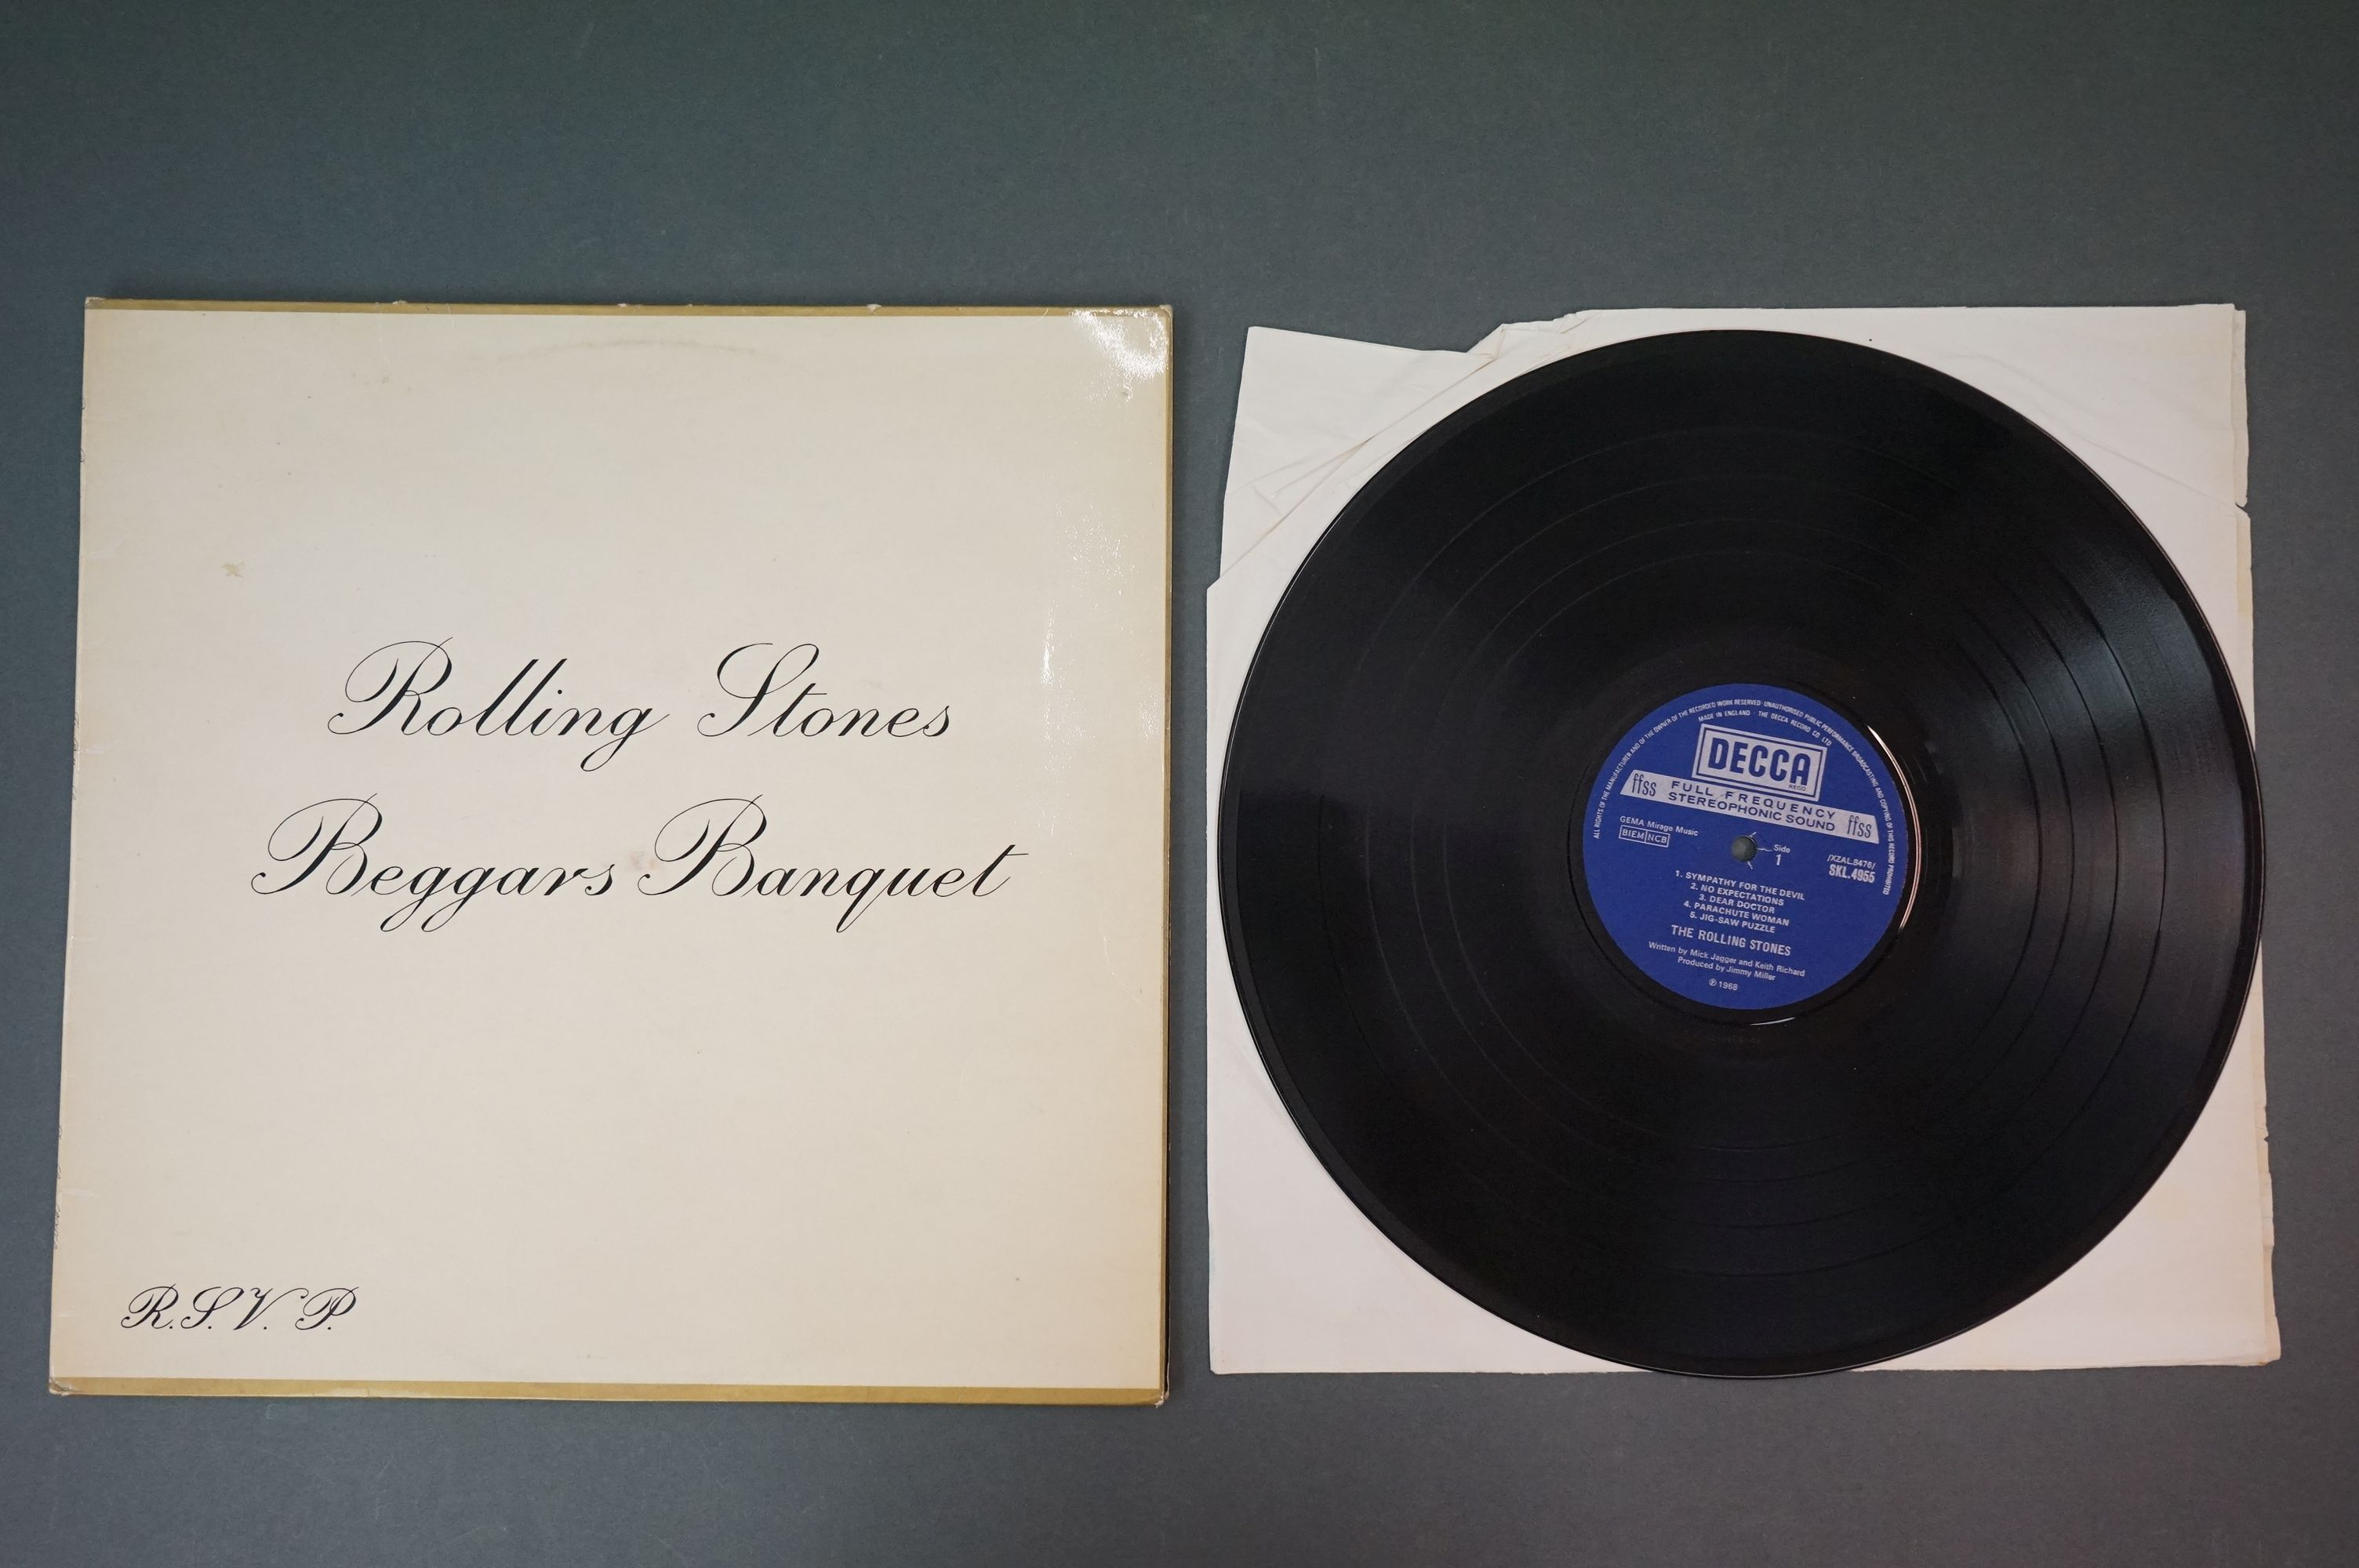 Vinyl - Rolling Stones 3 LP's to include Rolled Gold and Self Titled (both Dutch pressings), and - Image 6 of 10